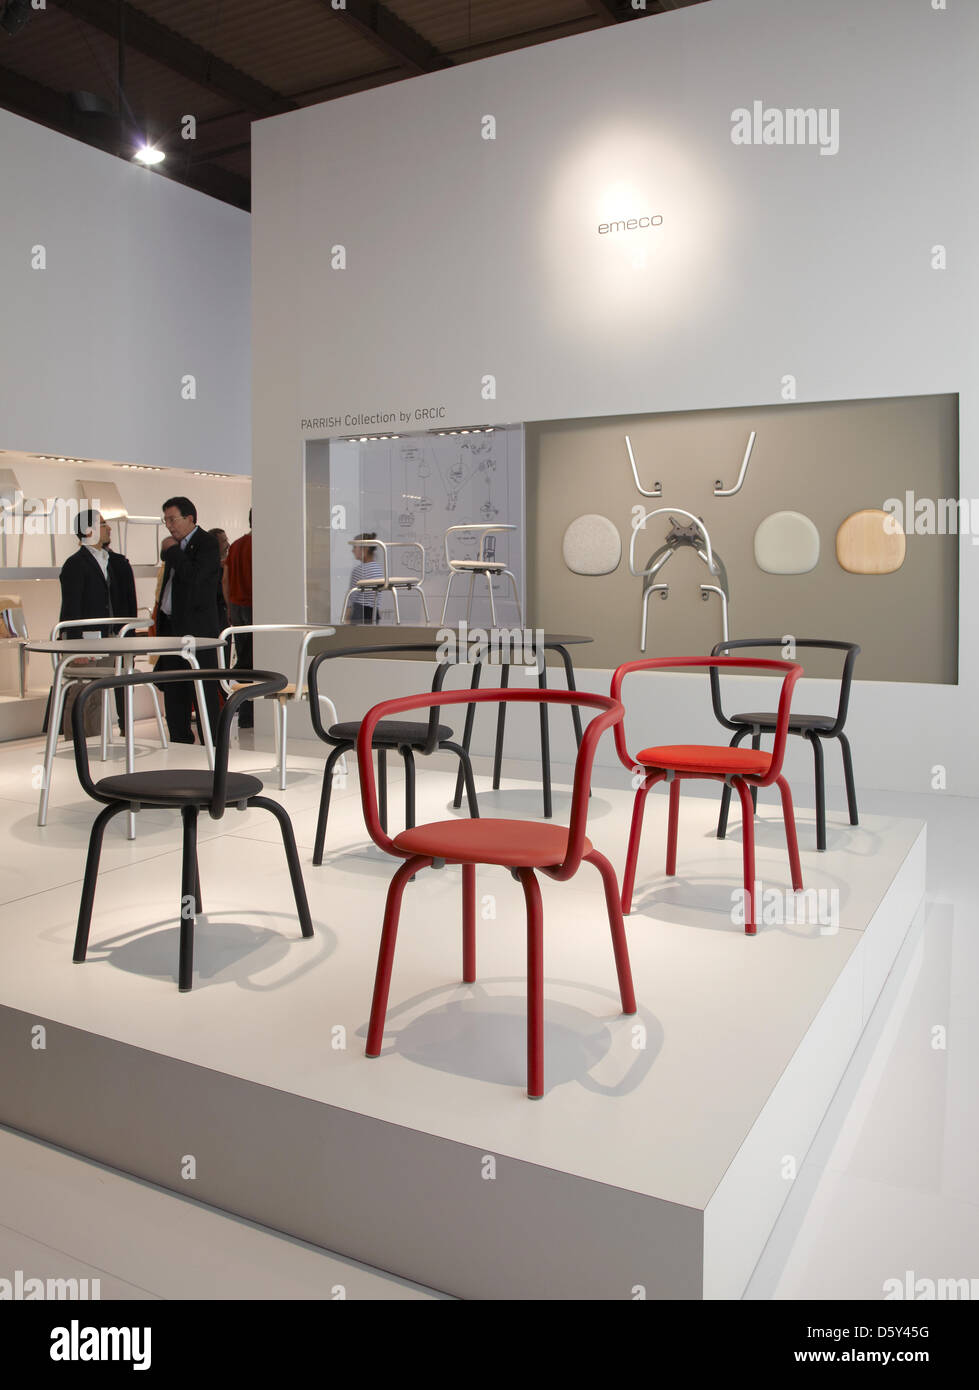 Milan, Italy. 9th April 2013. Konstantin Grcic chairs at Emeco stand during Salone Internazionale del Mobile, Furniture - Stock Image